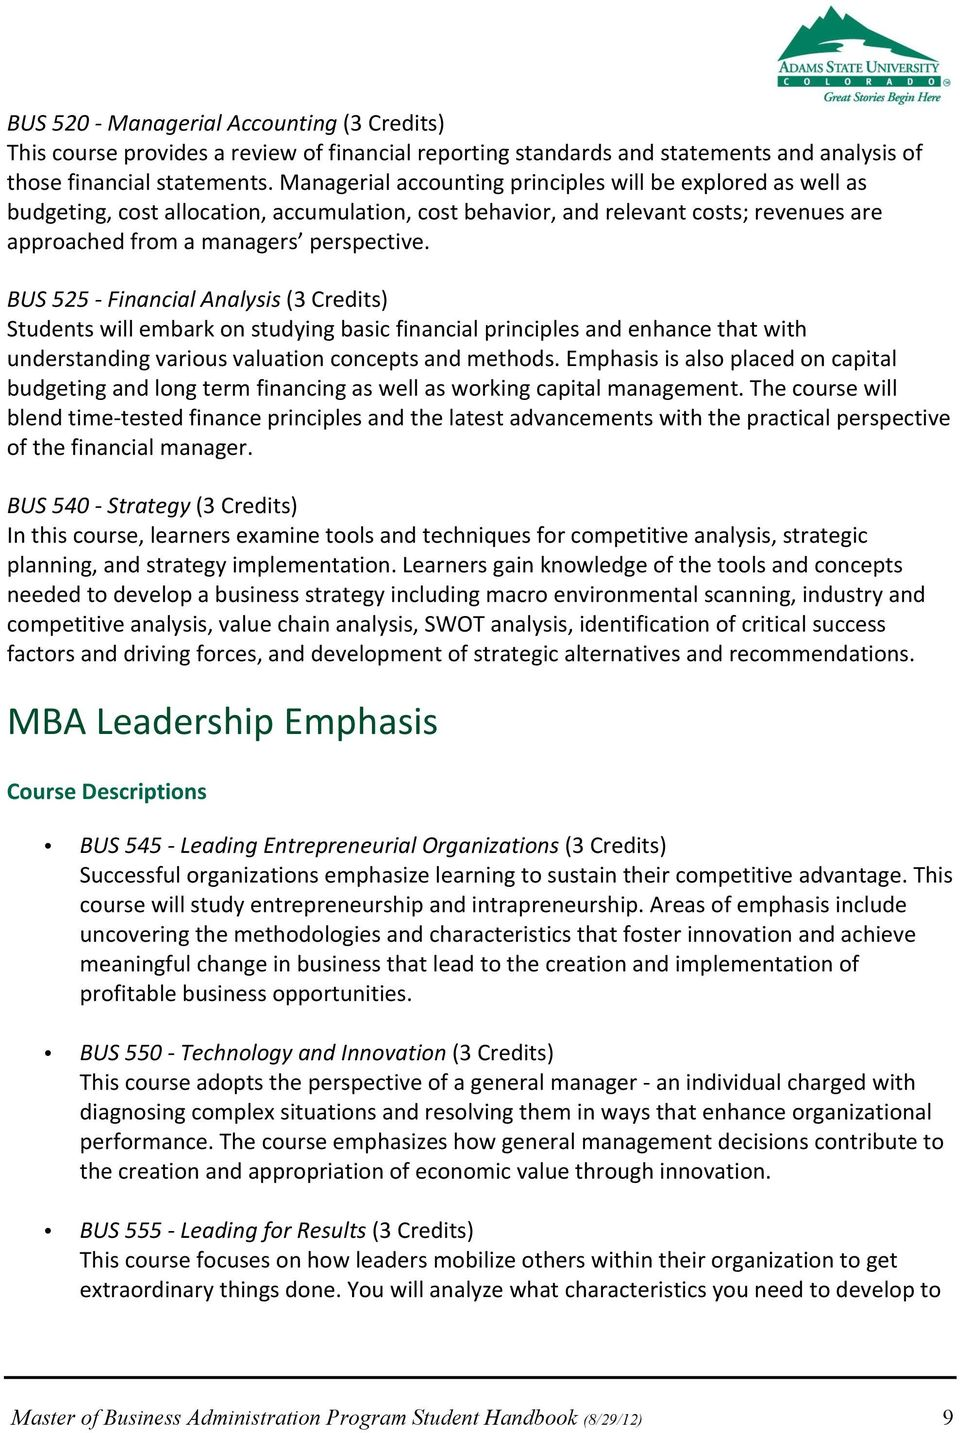 BUS 525 - Financial Analysis (3 Credits) Students will embark on studying basic financial principles and enhance that with understanding various valuation concepts and methods.